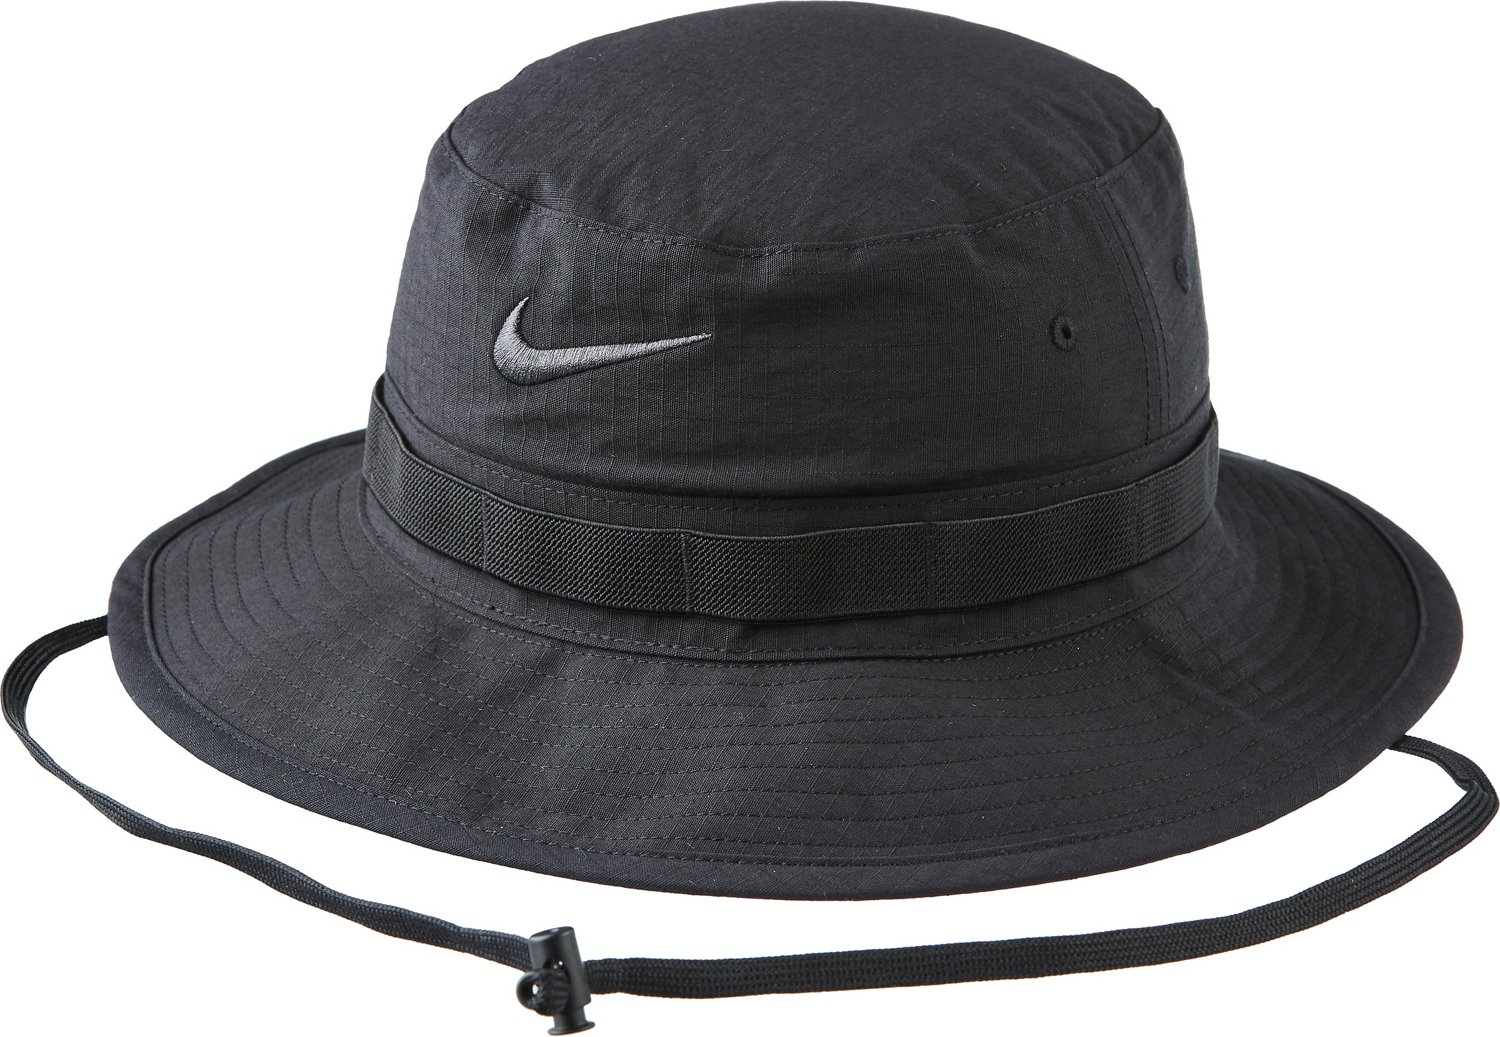 save off 4fae8 905c8 Nike Men s Dry Sideline Bucket Hat   Academy